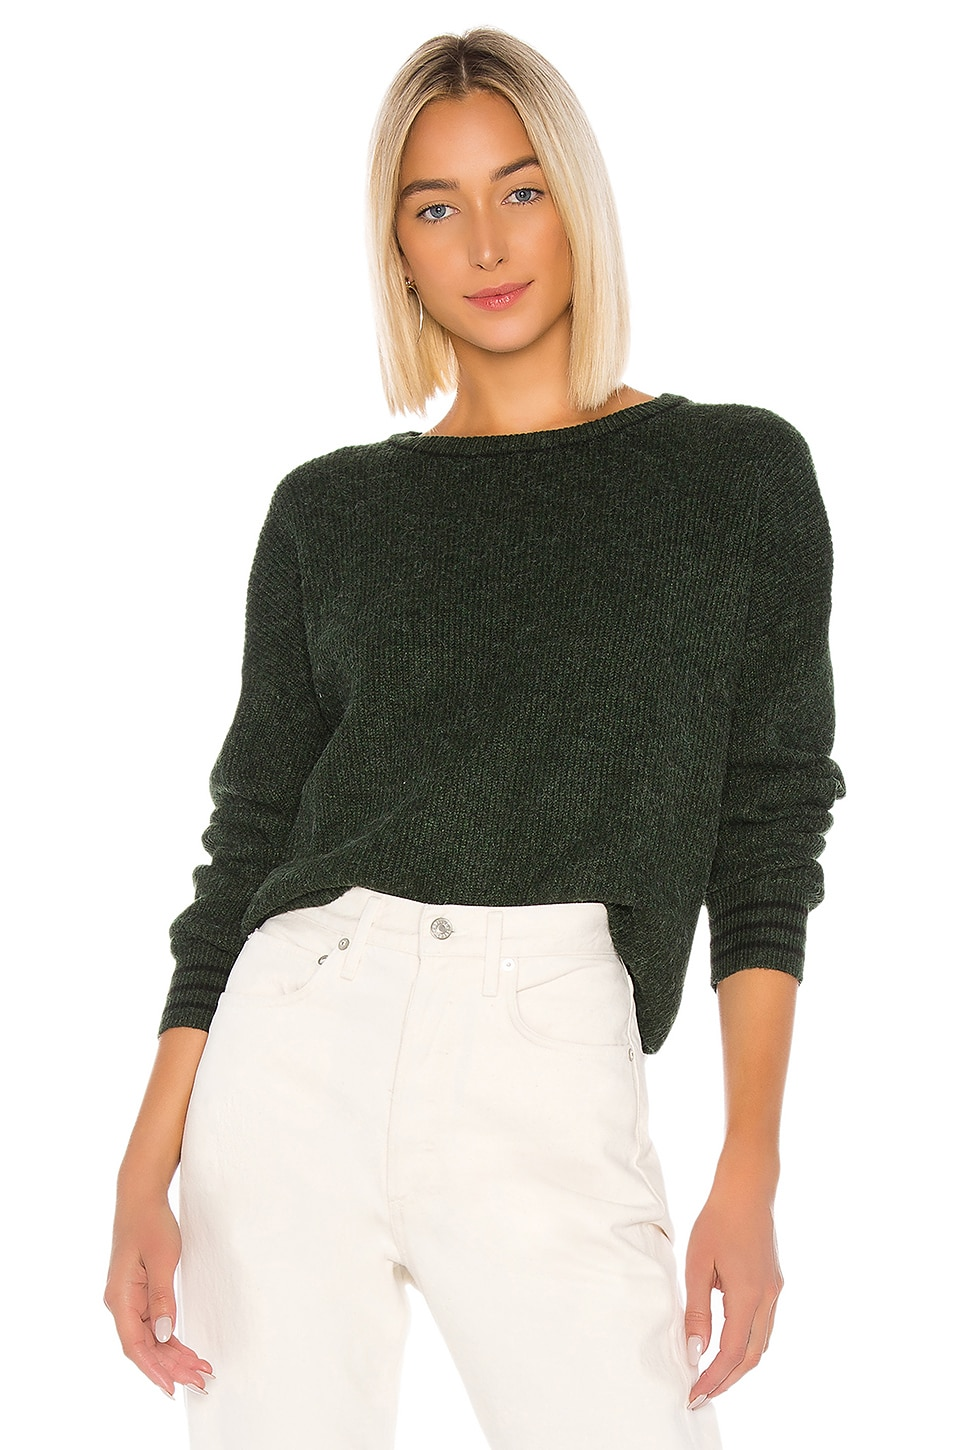 John & Jenn by Line Beckett Sweater in Pine